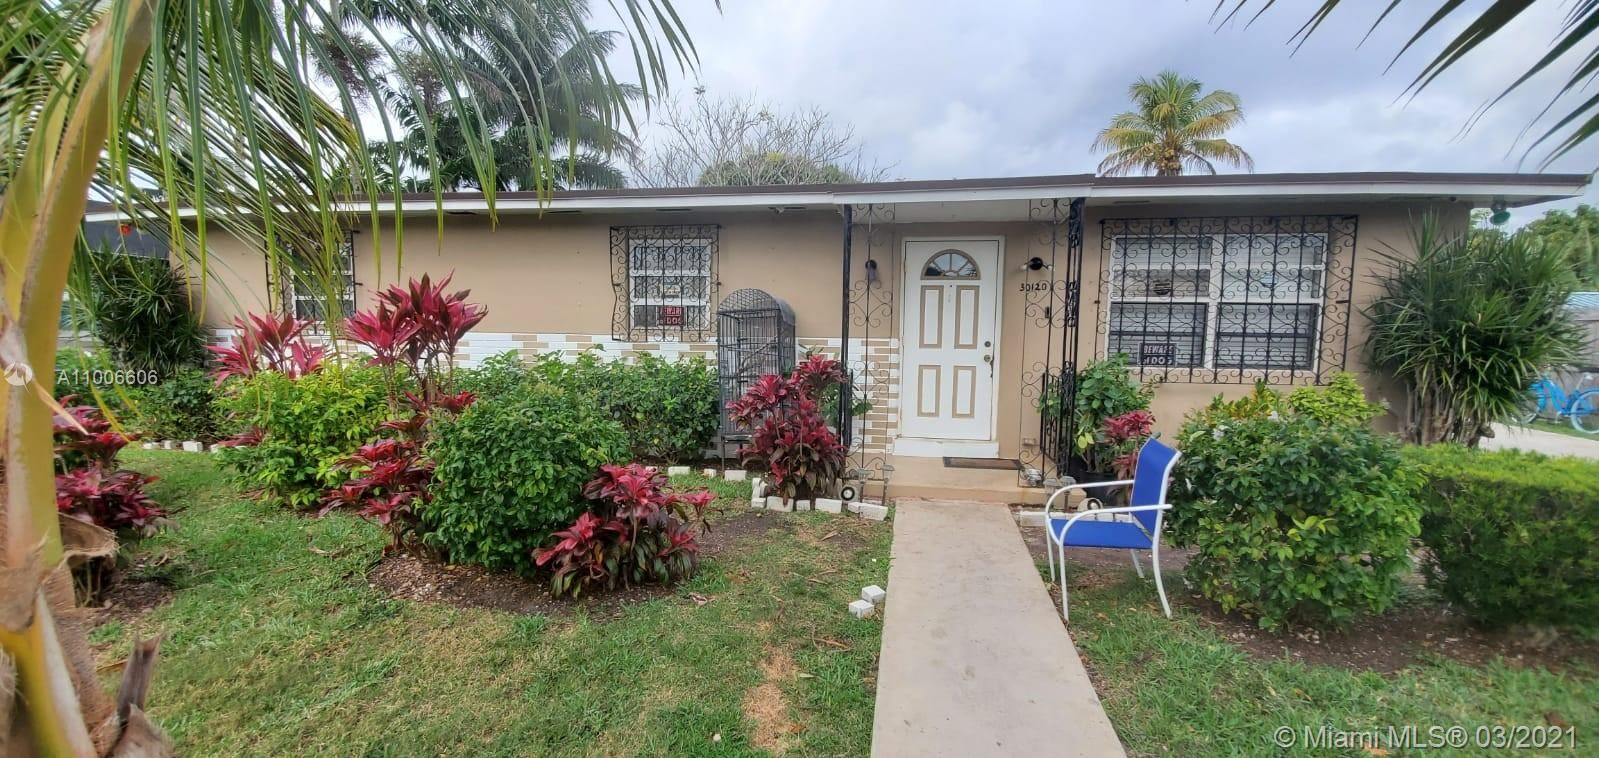 30120 SW 151st Ave, Homestead, FL 33033 - #: A11006606